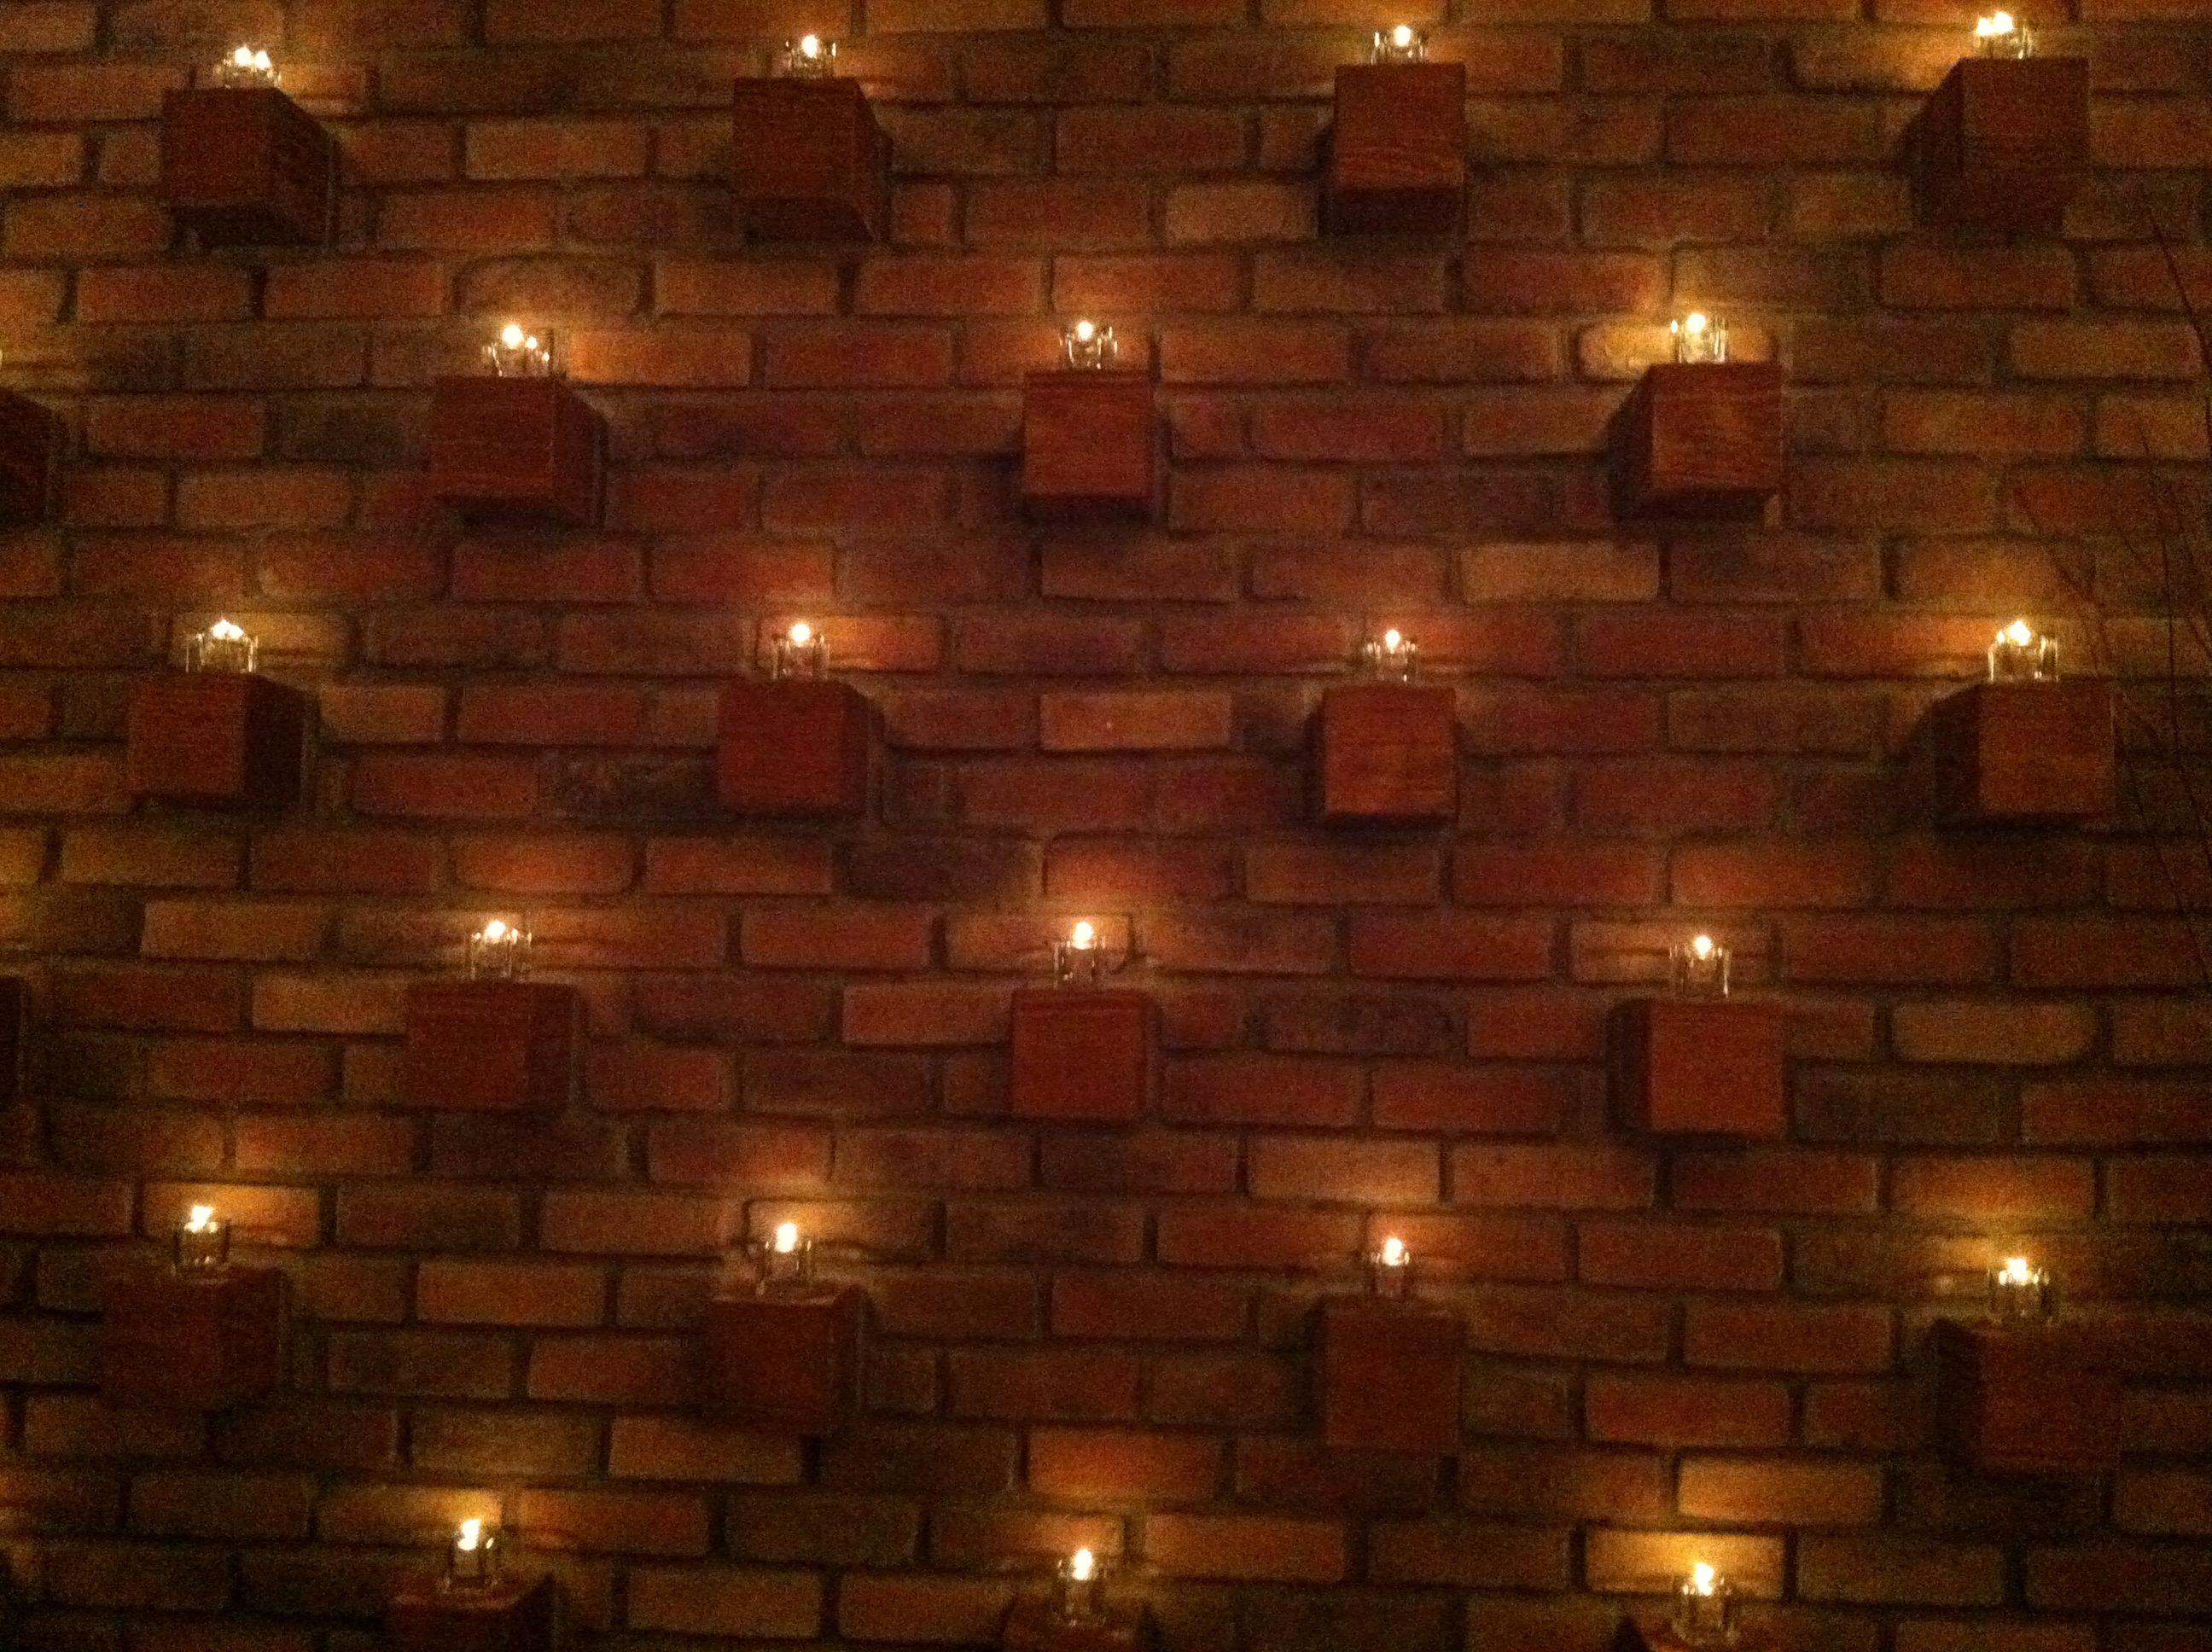 Using Bricks As Candle Holders